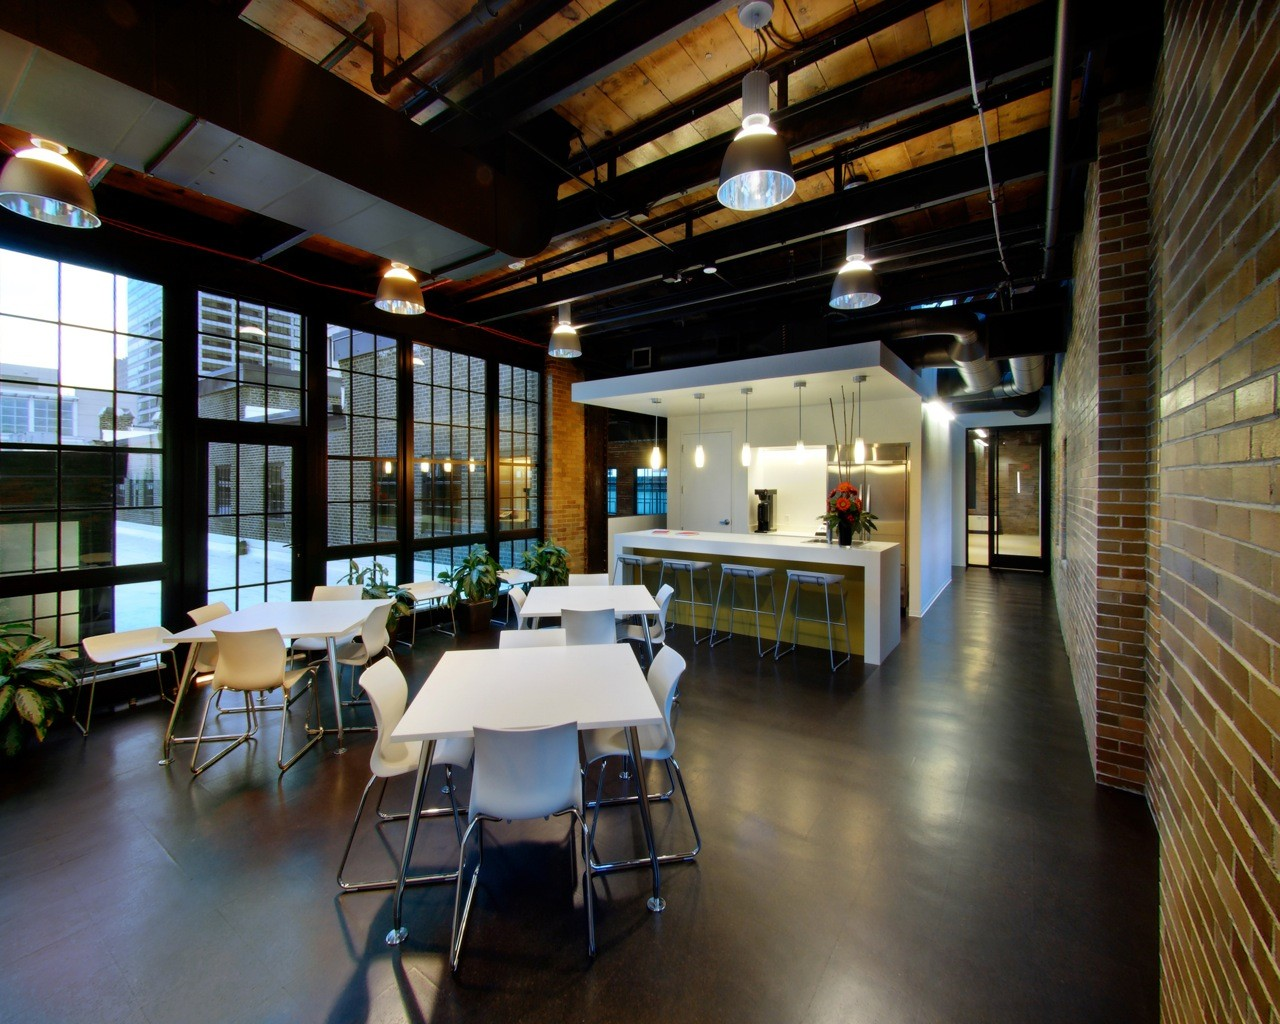 Gallery of Cannon Design Regional Offices / Cannon Design - 11